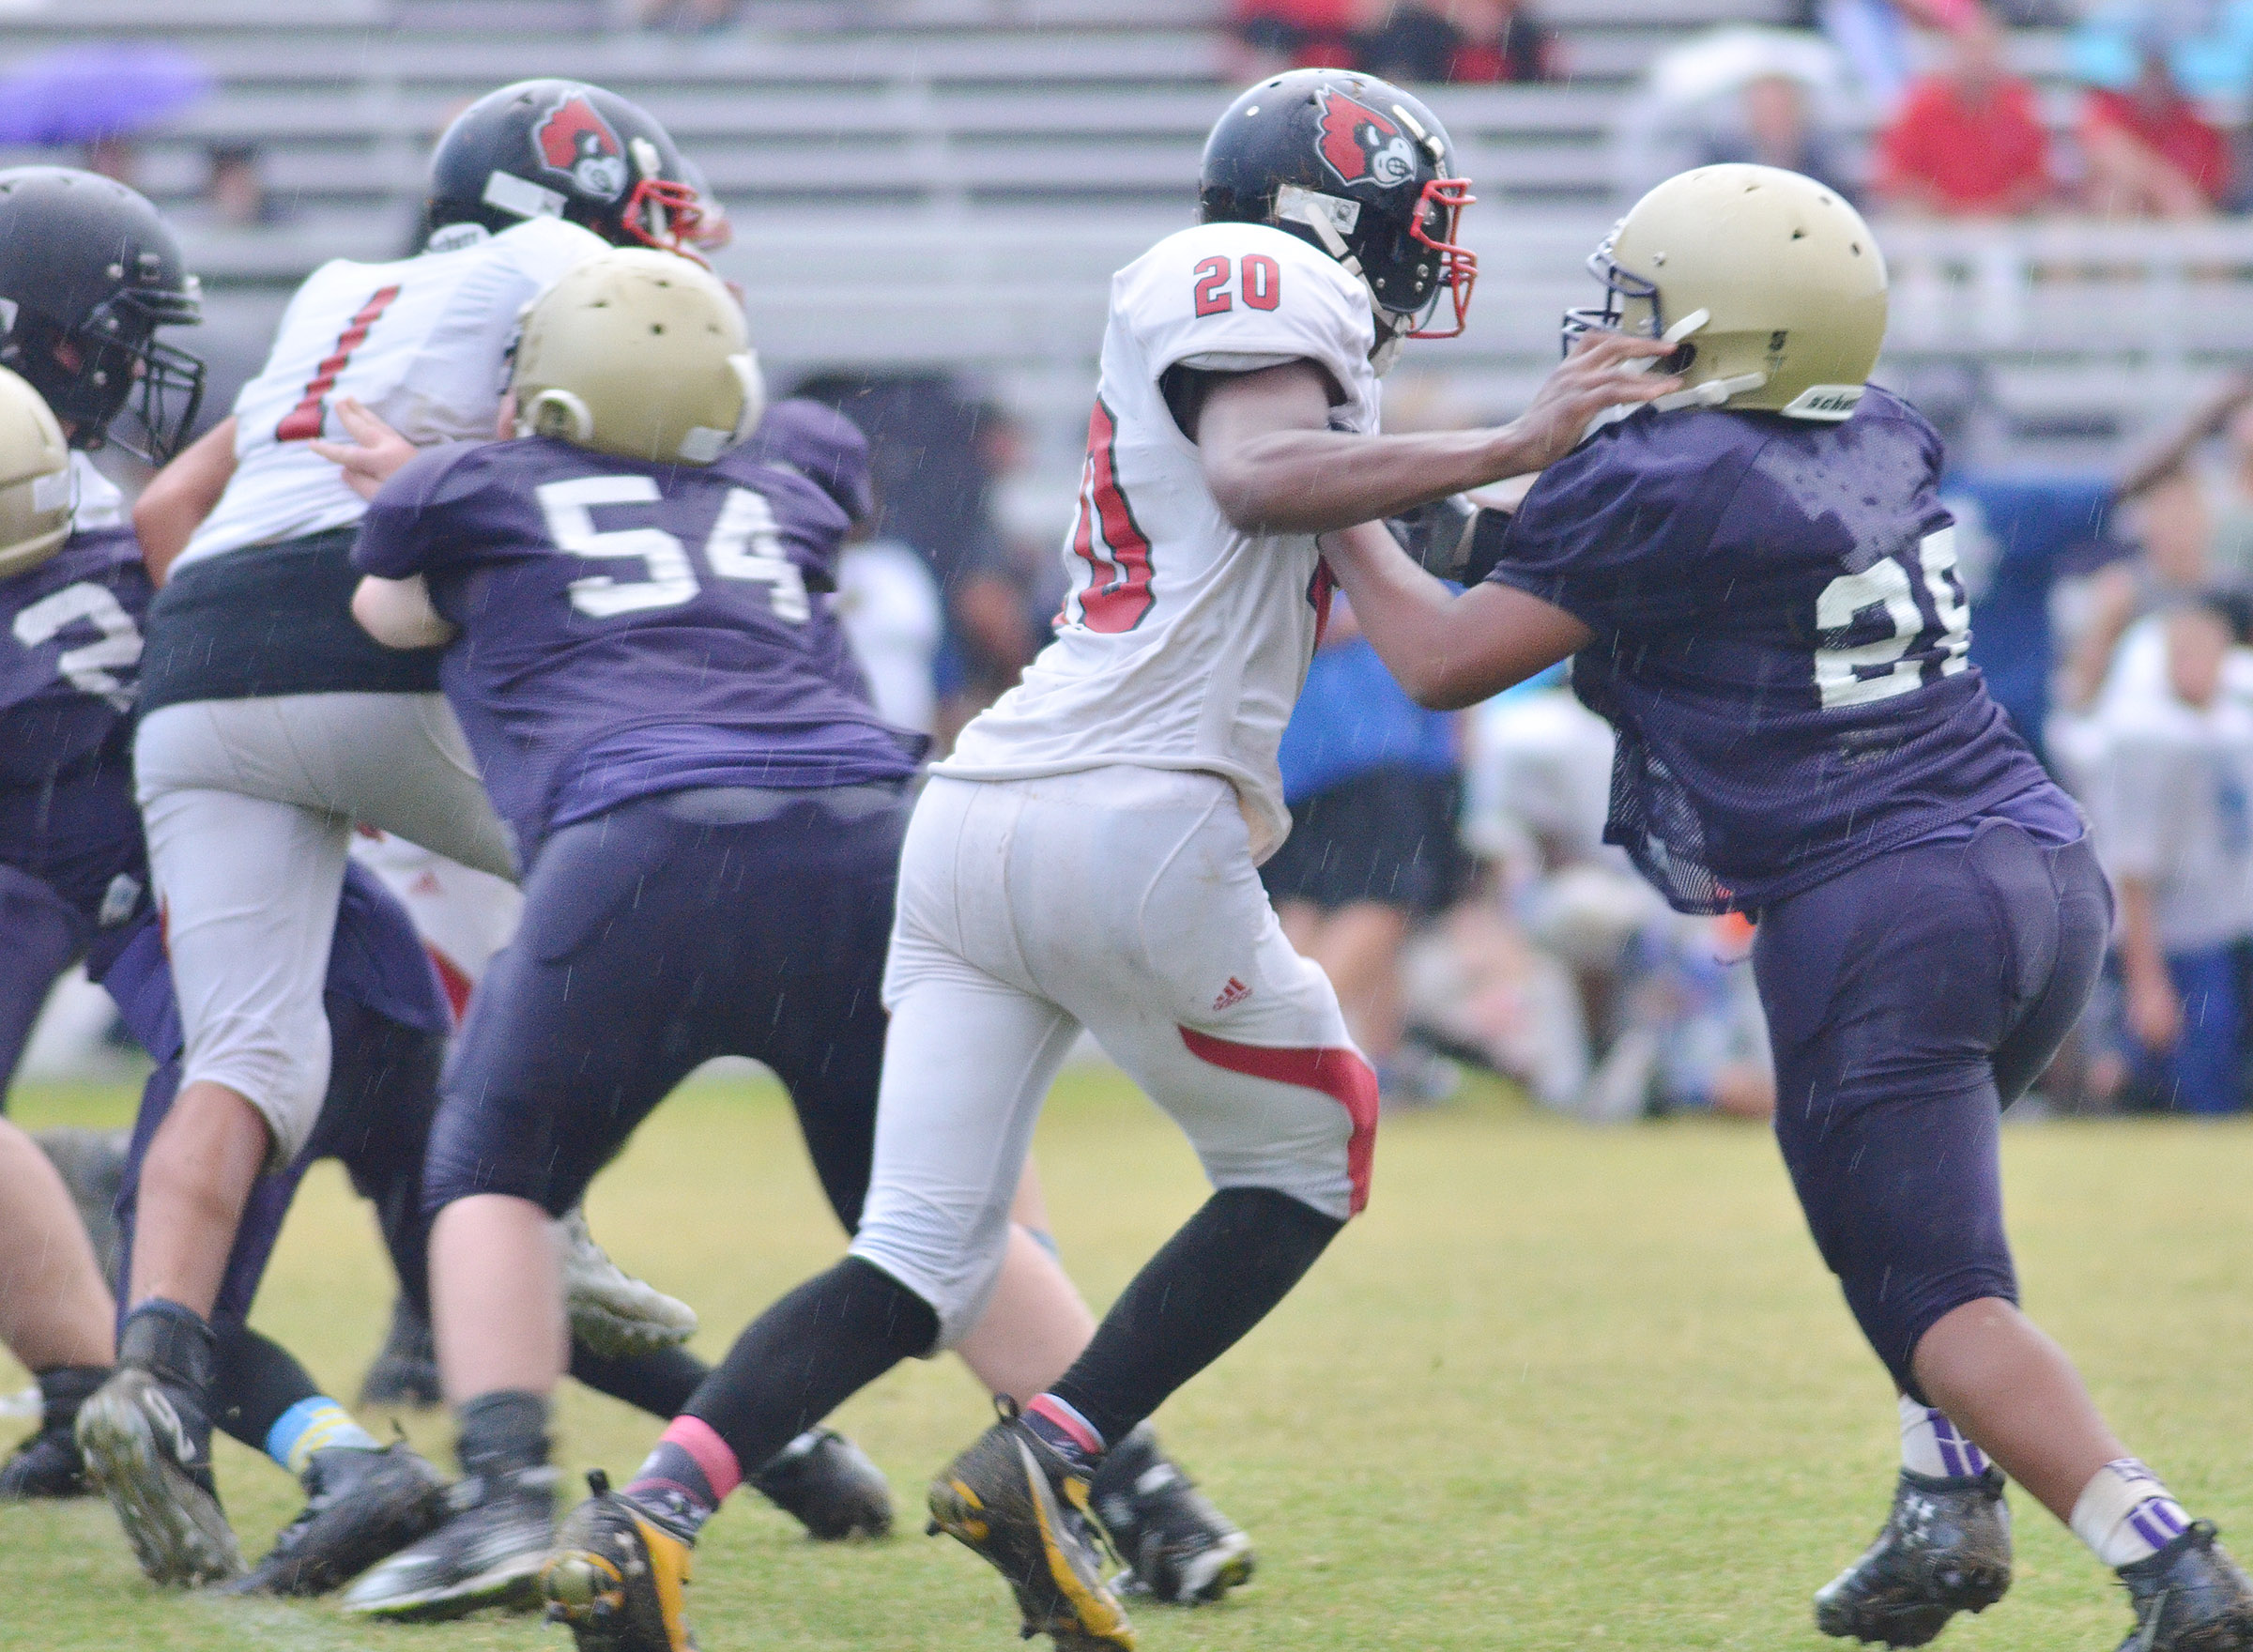 CMS seventh-graders Hayden Jones, at left, and Keondre Weathers tackle.